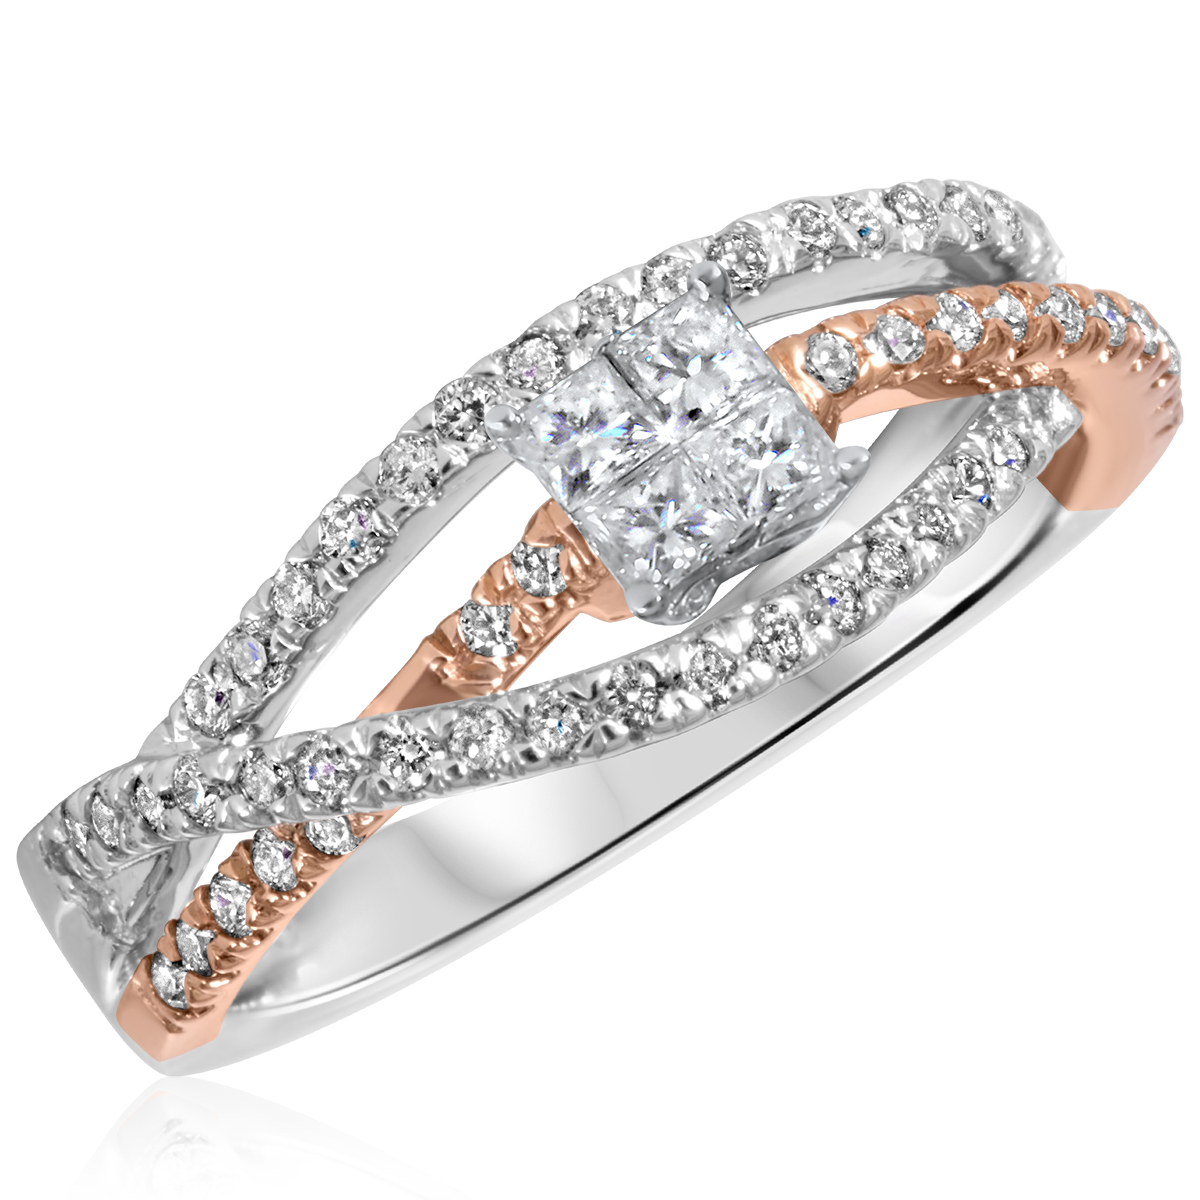 2 3 ct tw diamond women39s bridal wedding ring set 10k for Ladies diamond wedding ring sets